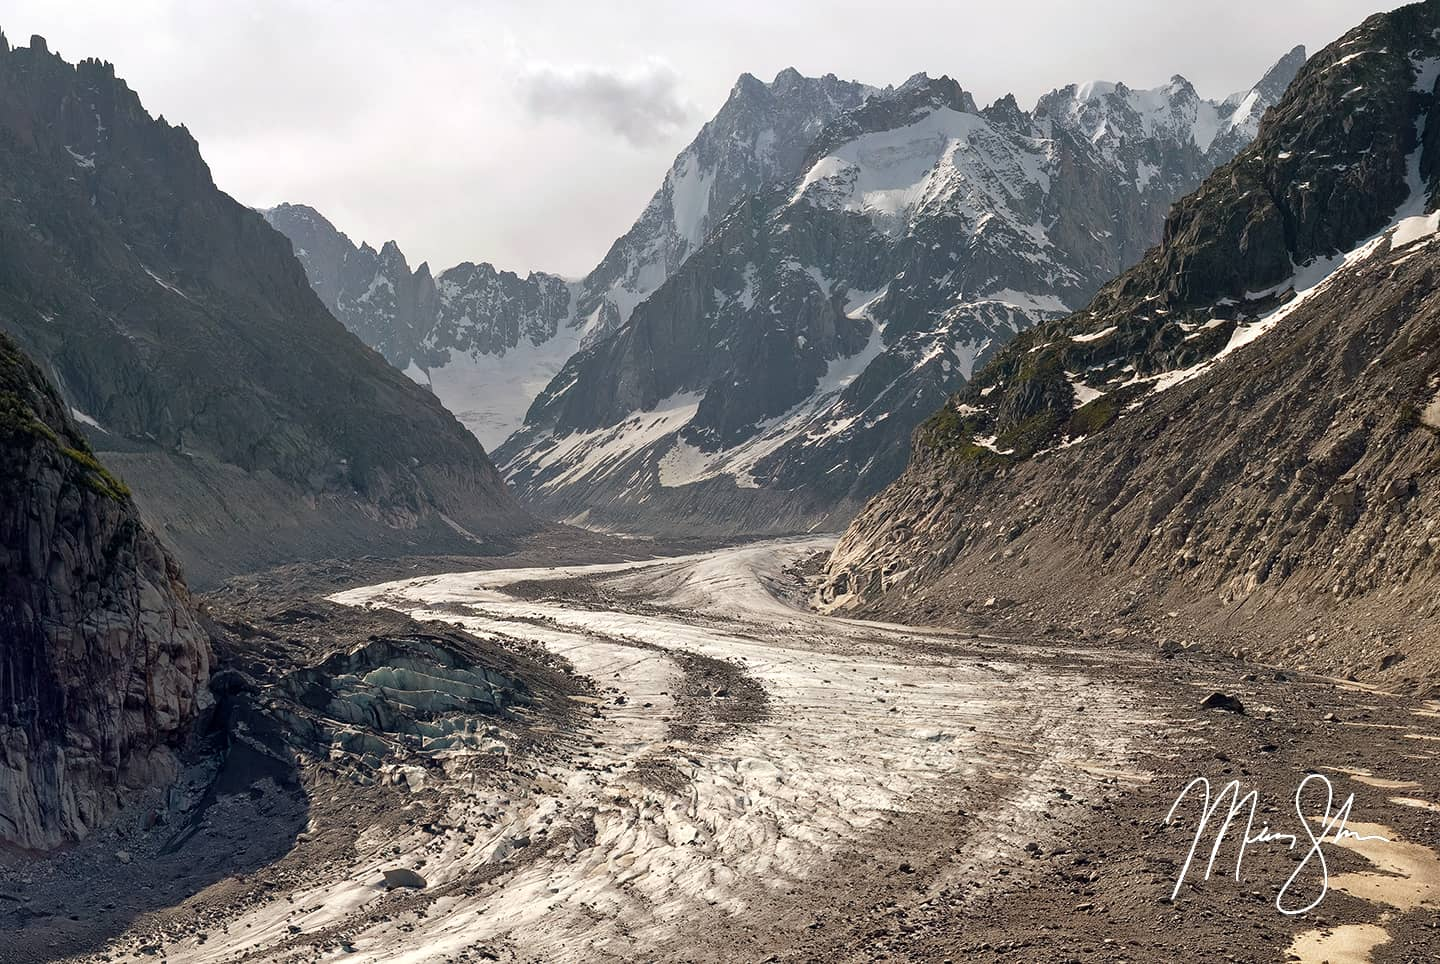 Open edition fine art print of Mer de Glace from Mickey Shannon Photography. Location: Mer de Glace, France